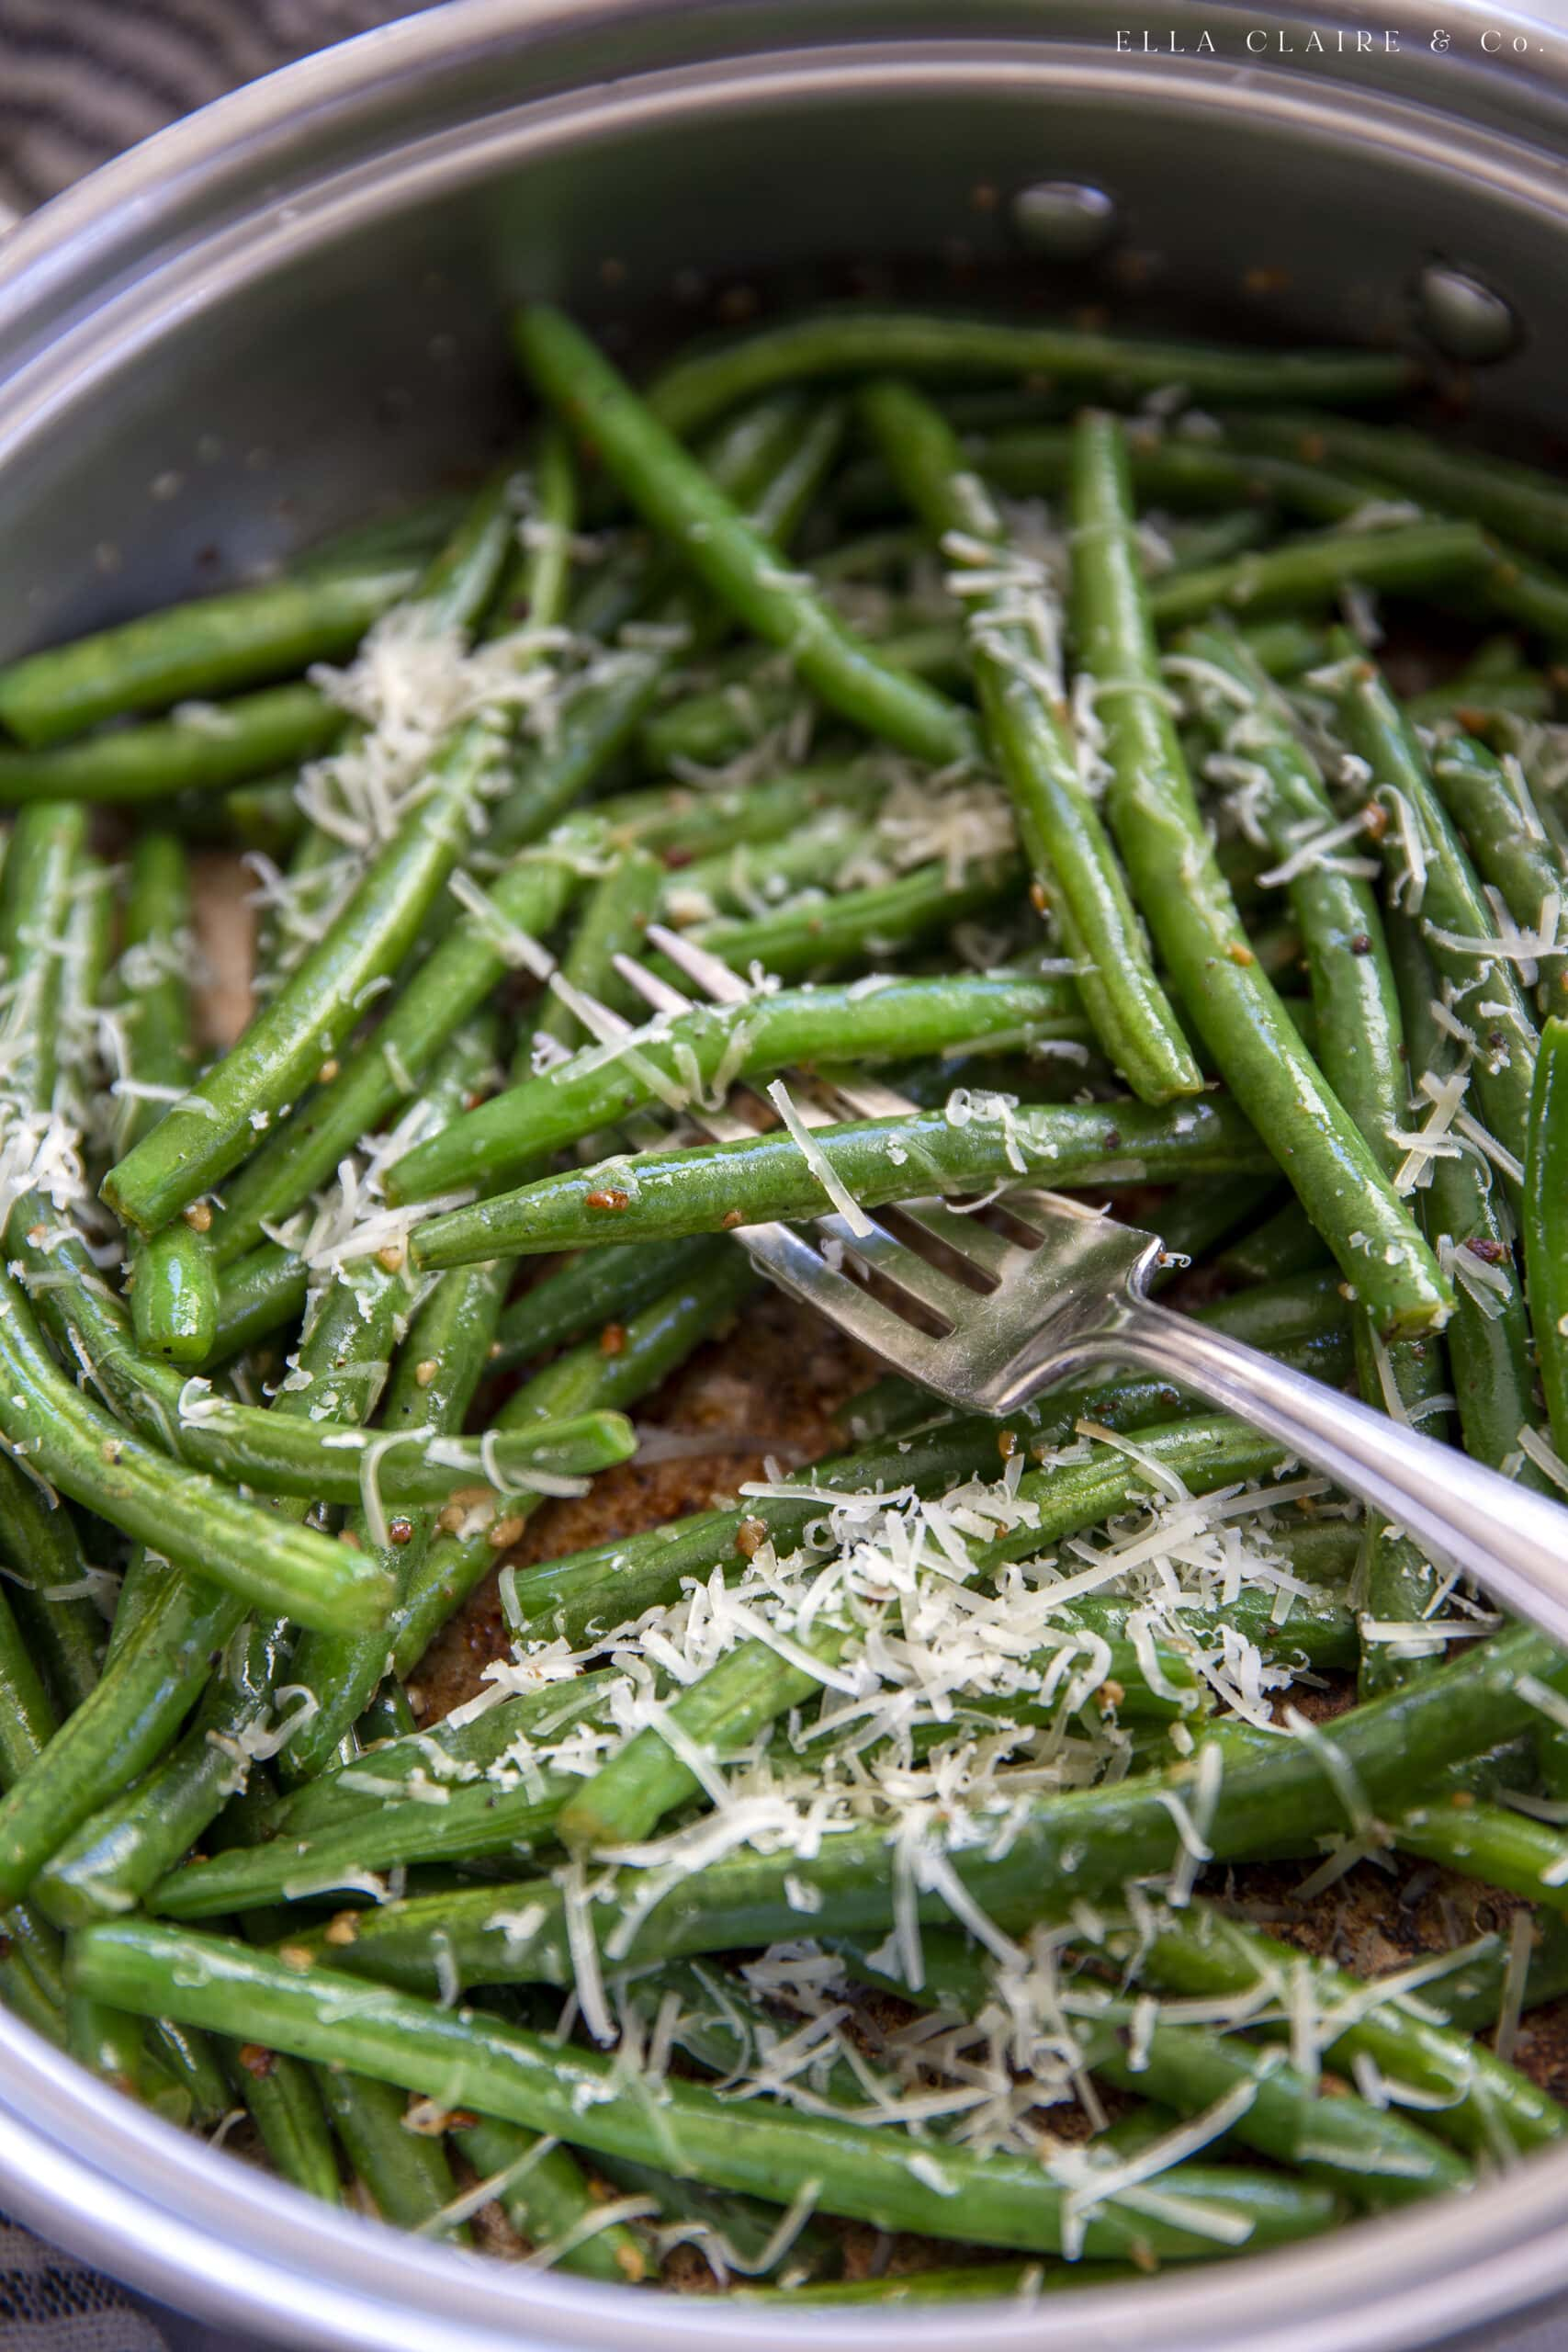 garlic and parmesan on sautéed green beans